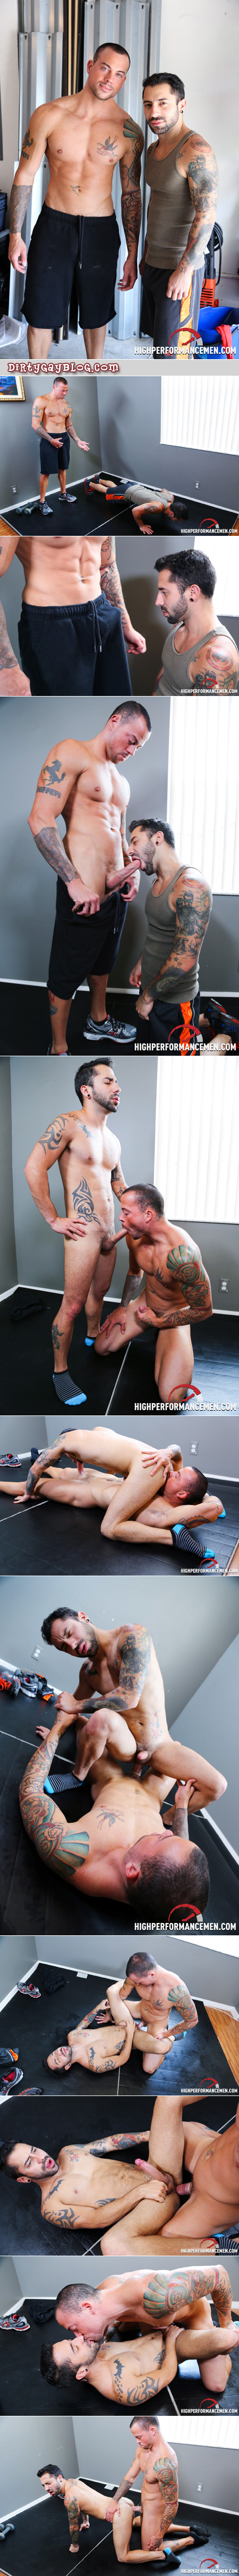 Tattooed muscle man getting fucked in a private gym by his hung personal trainer.